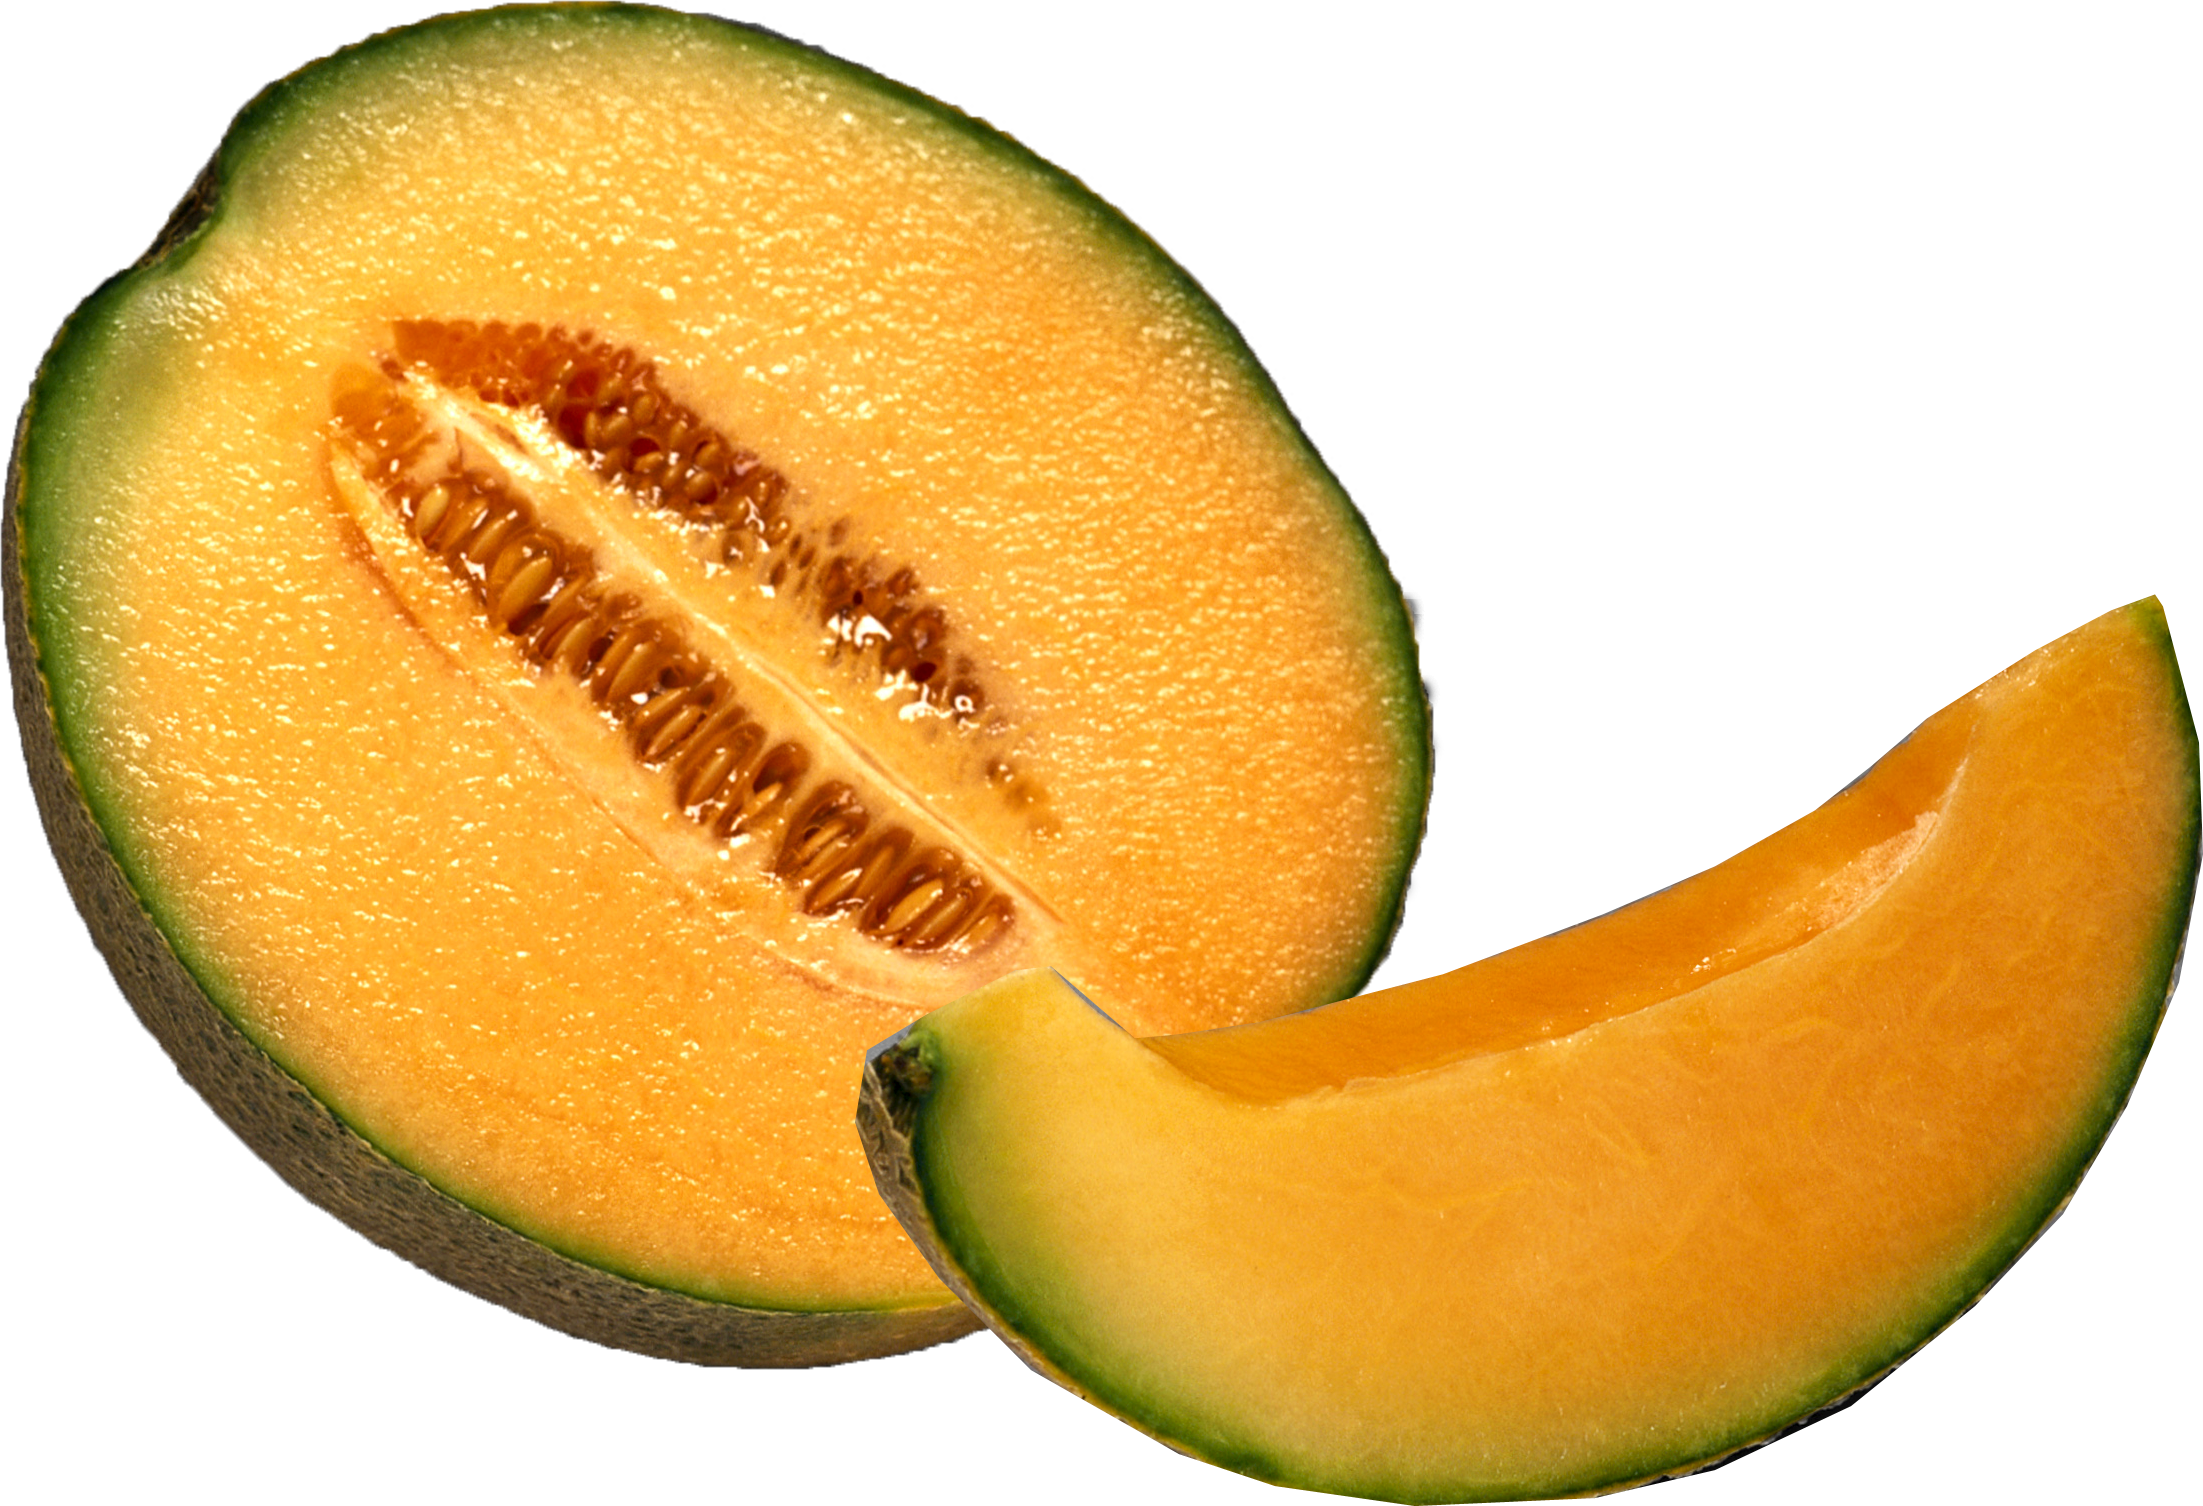 melon png image collection download crazypngm #26461